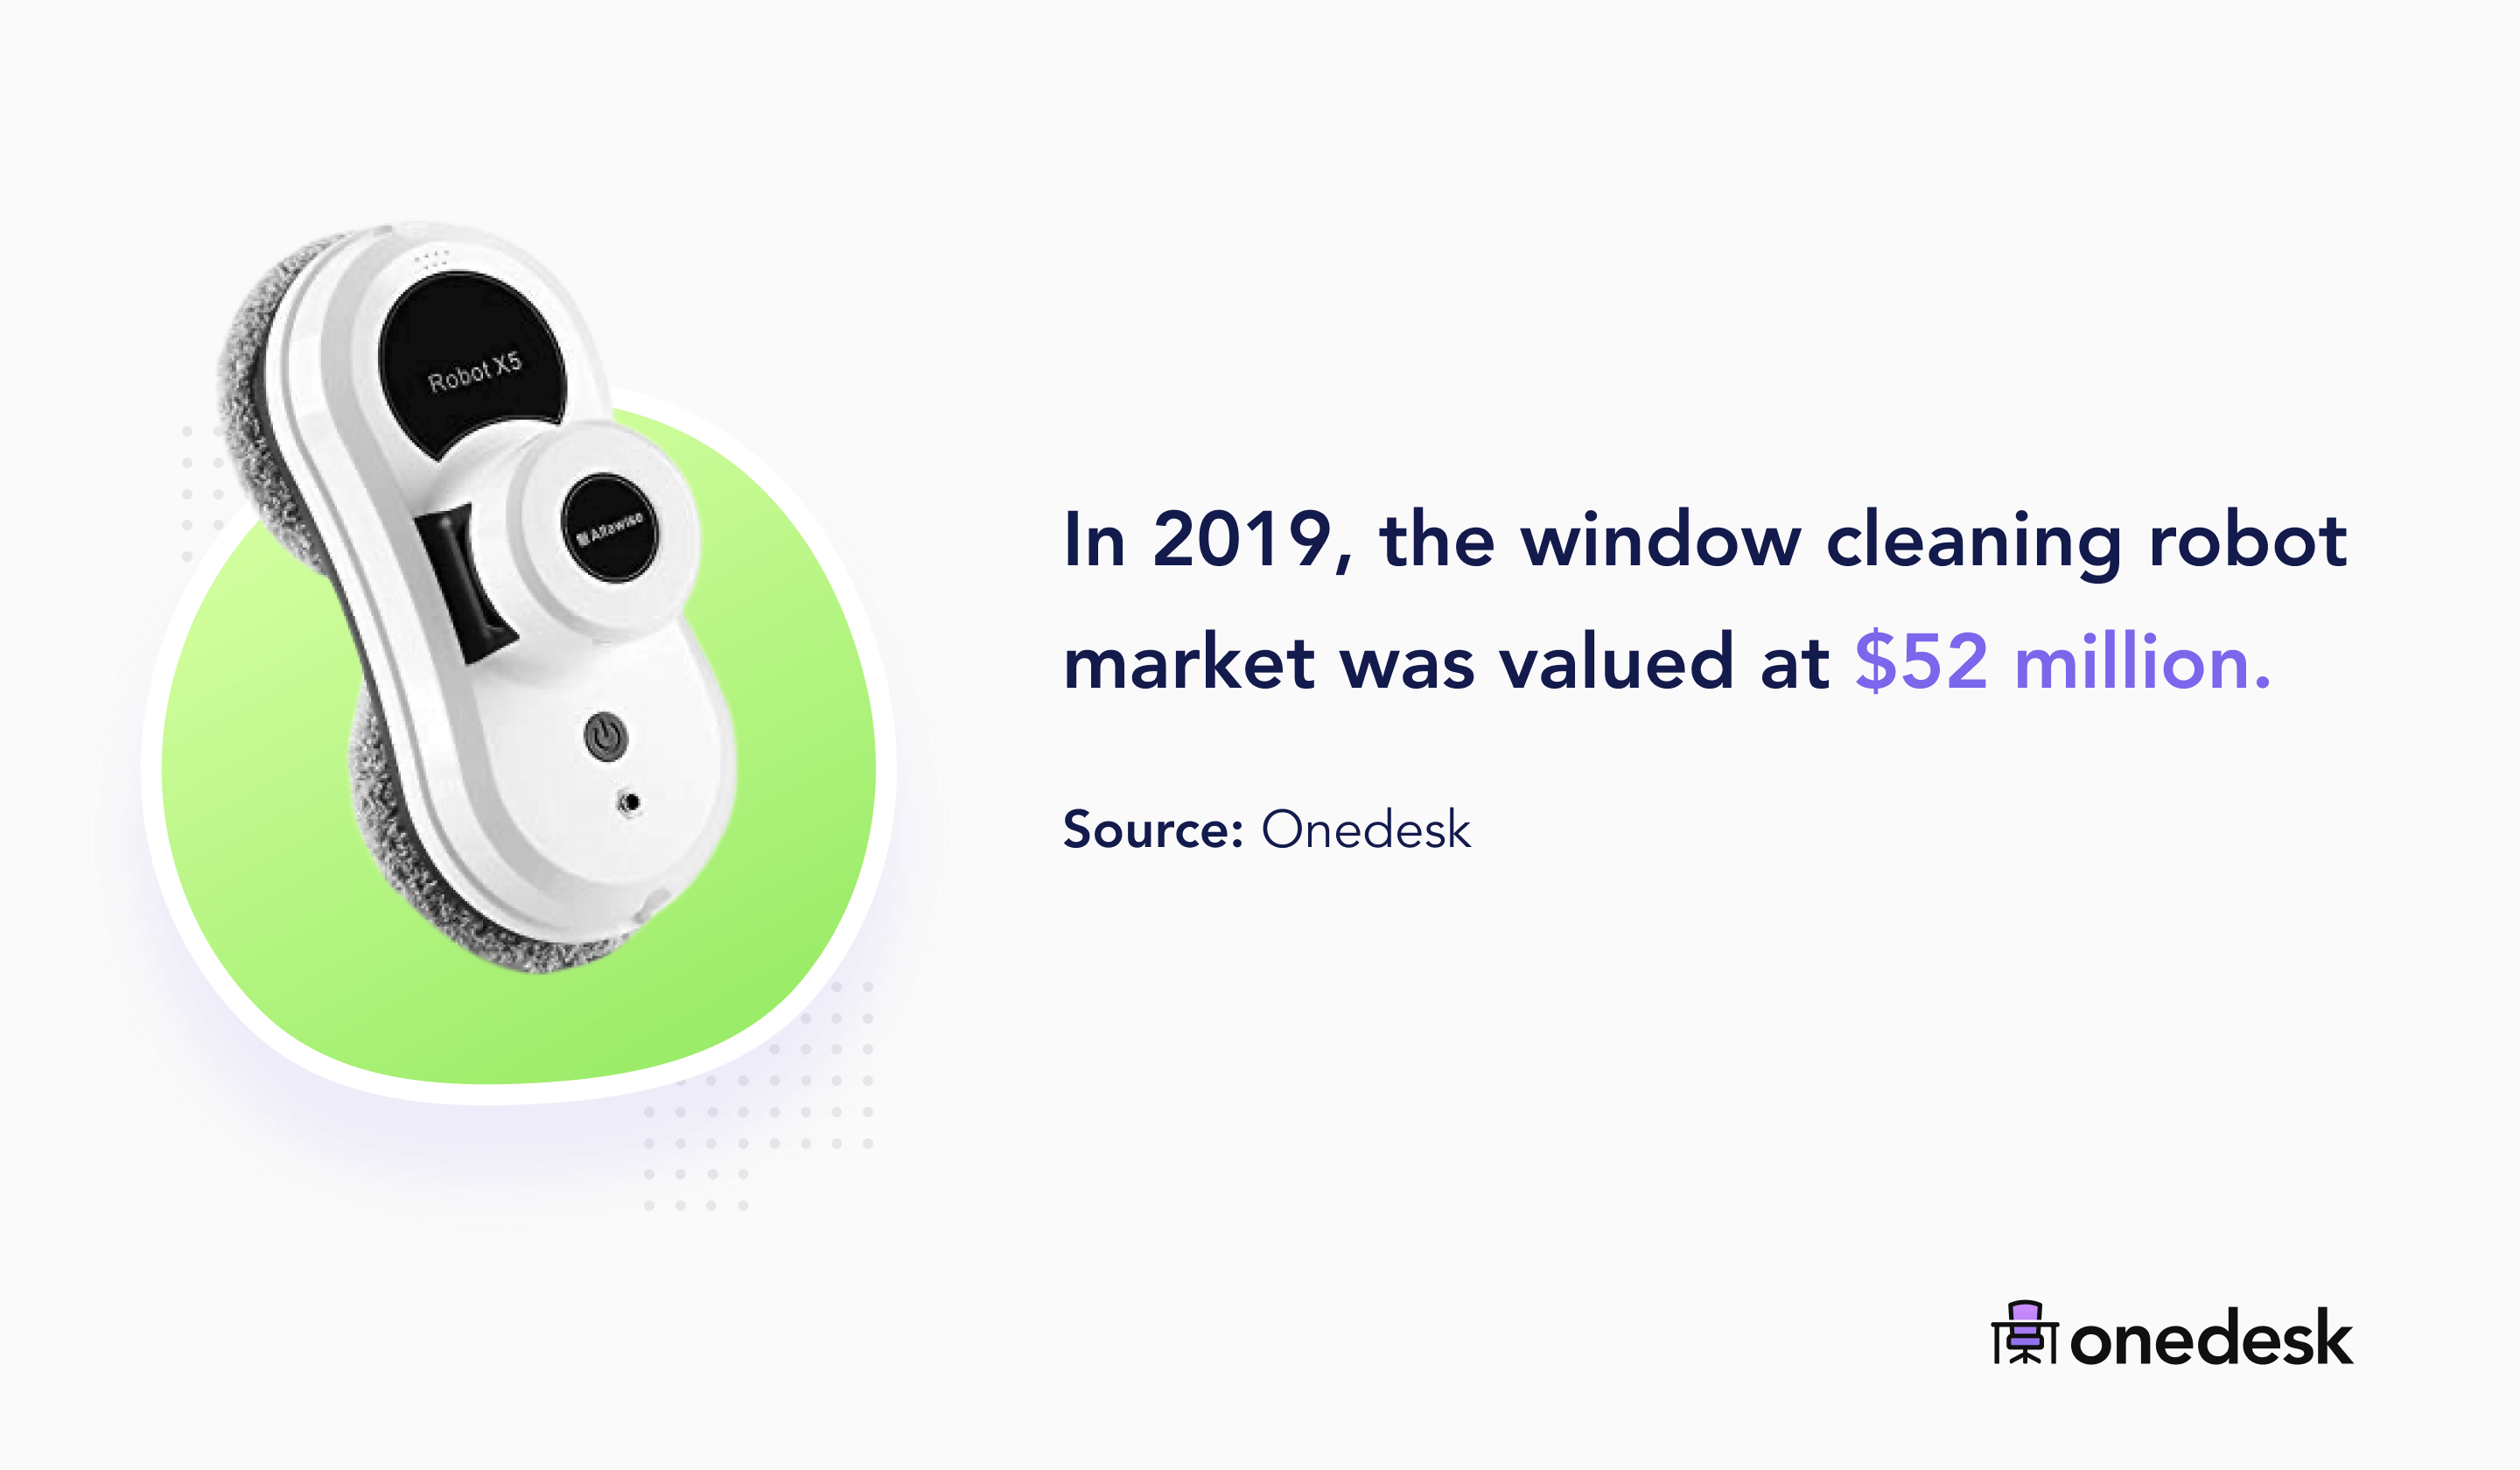 window cleaning robot market size